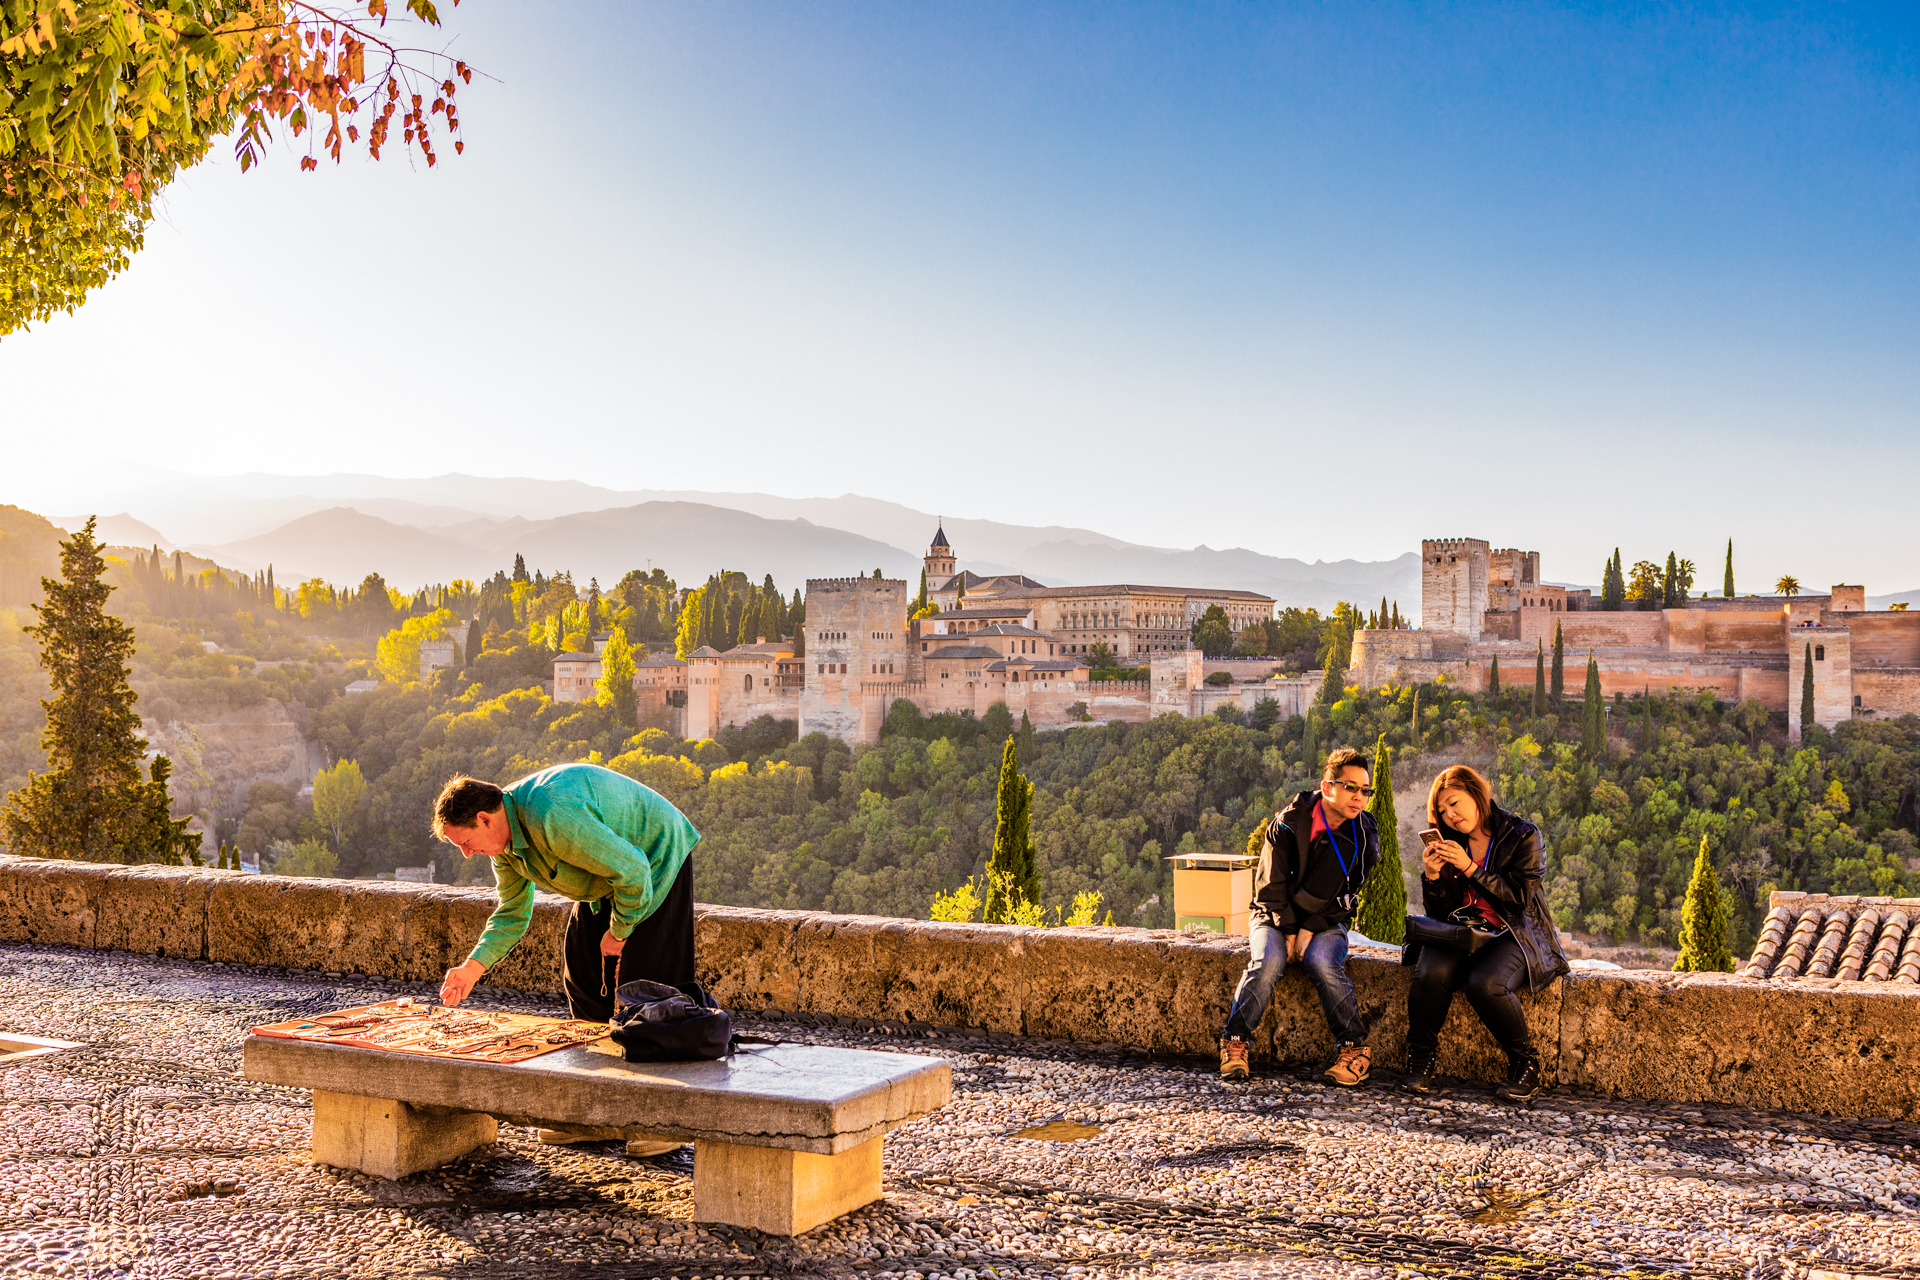 A quiet Alhambra viewpoint, Granada, Spain, in the early morning